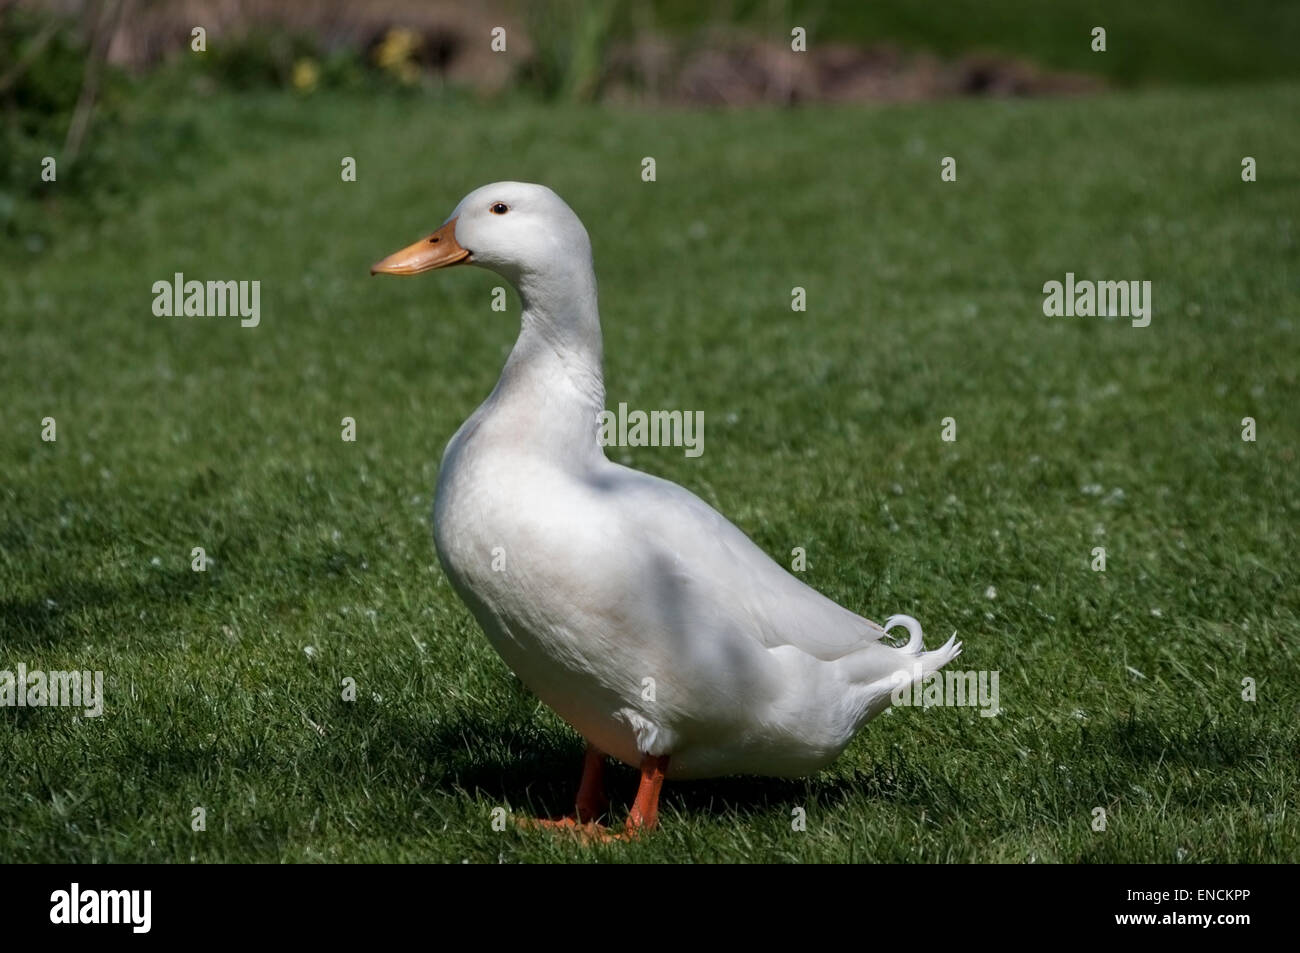 Single white Aylesbury duck on grass, side on but looking at camera. Space around for copy. - Stock Image